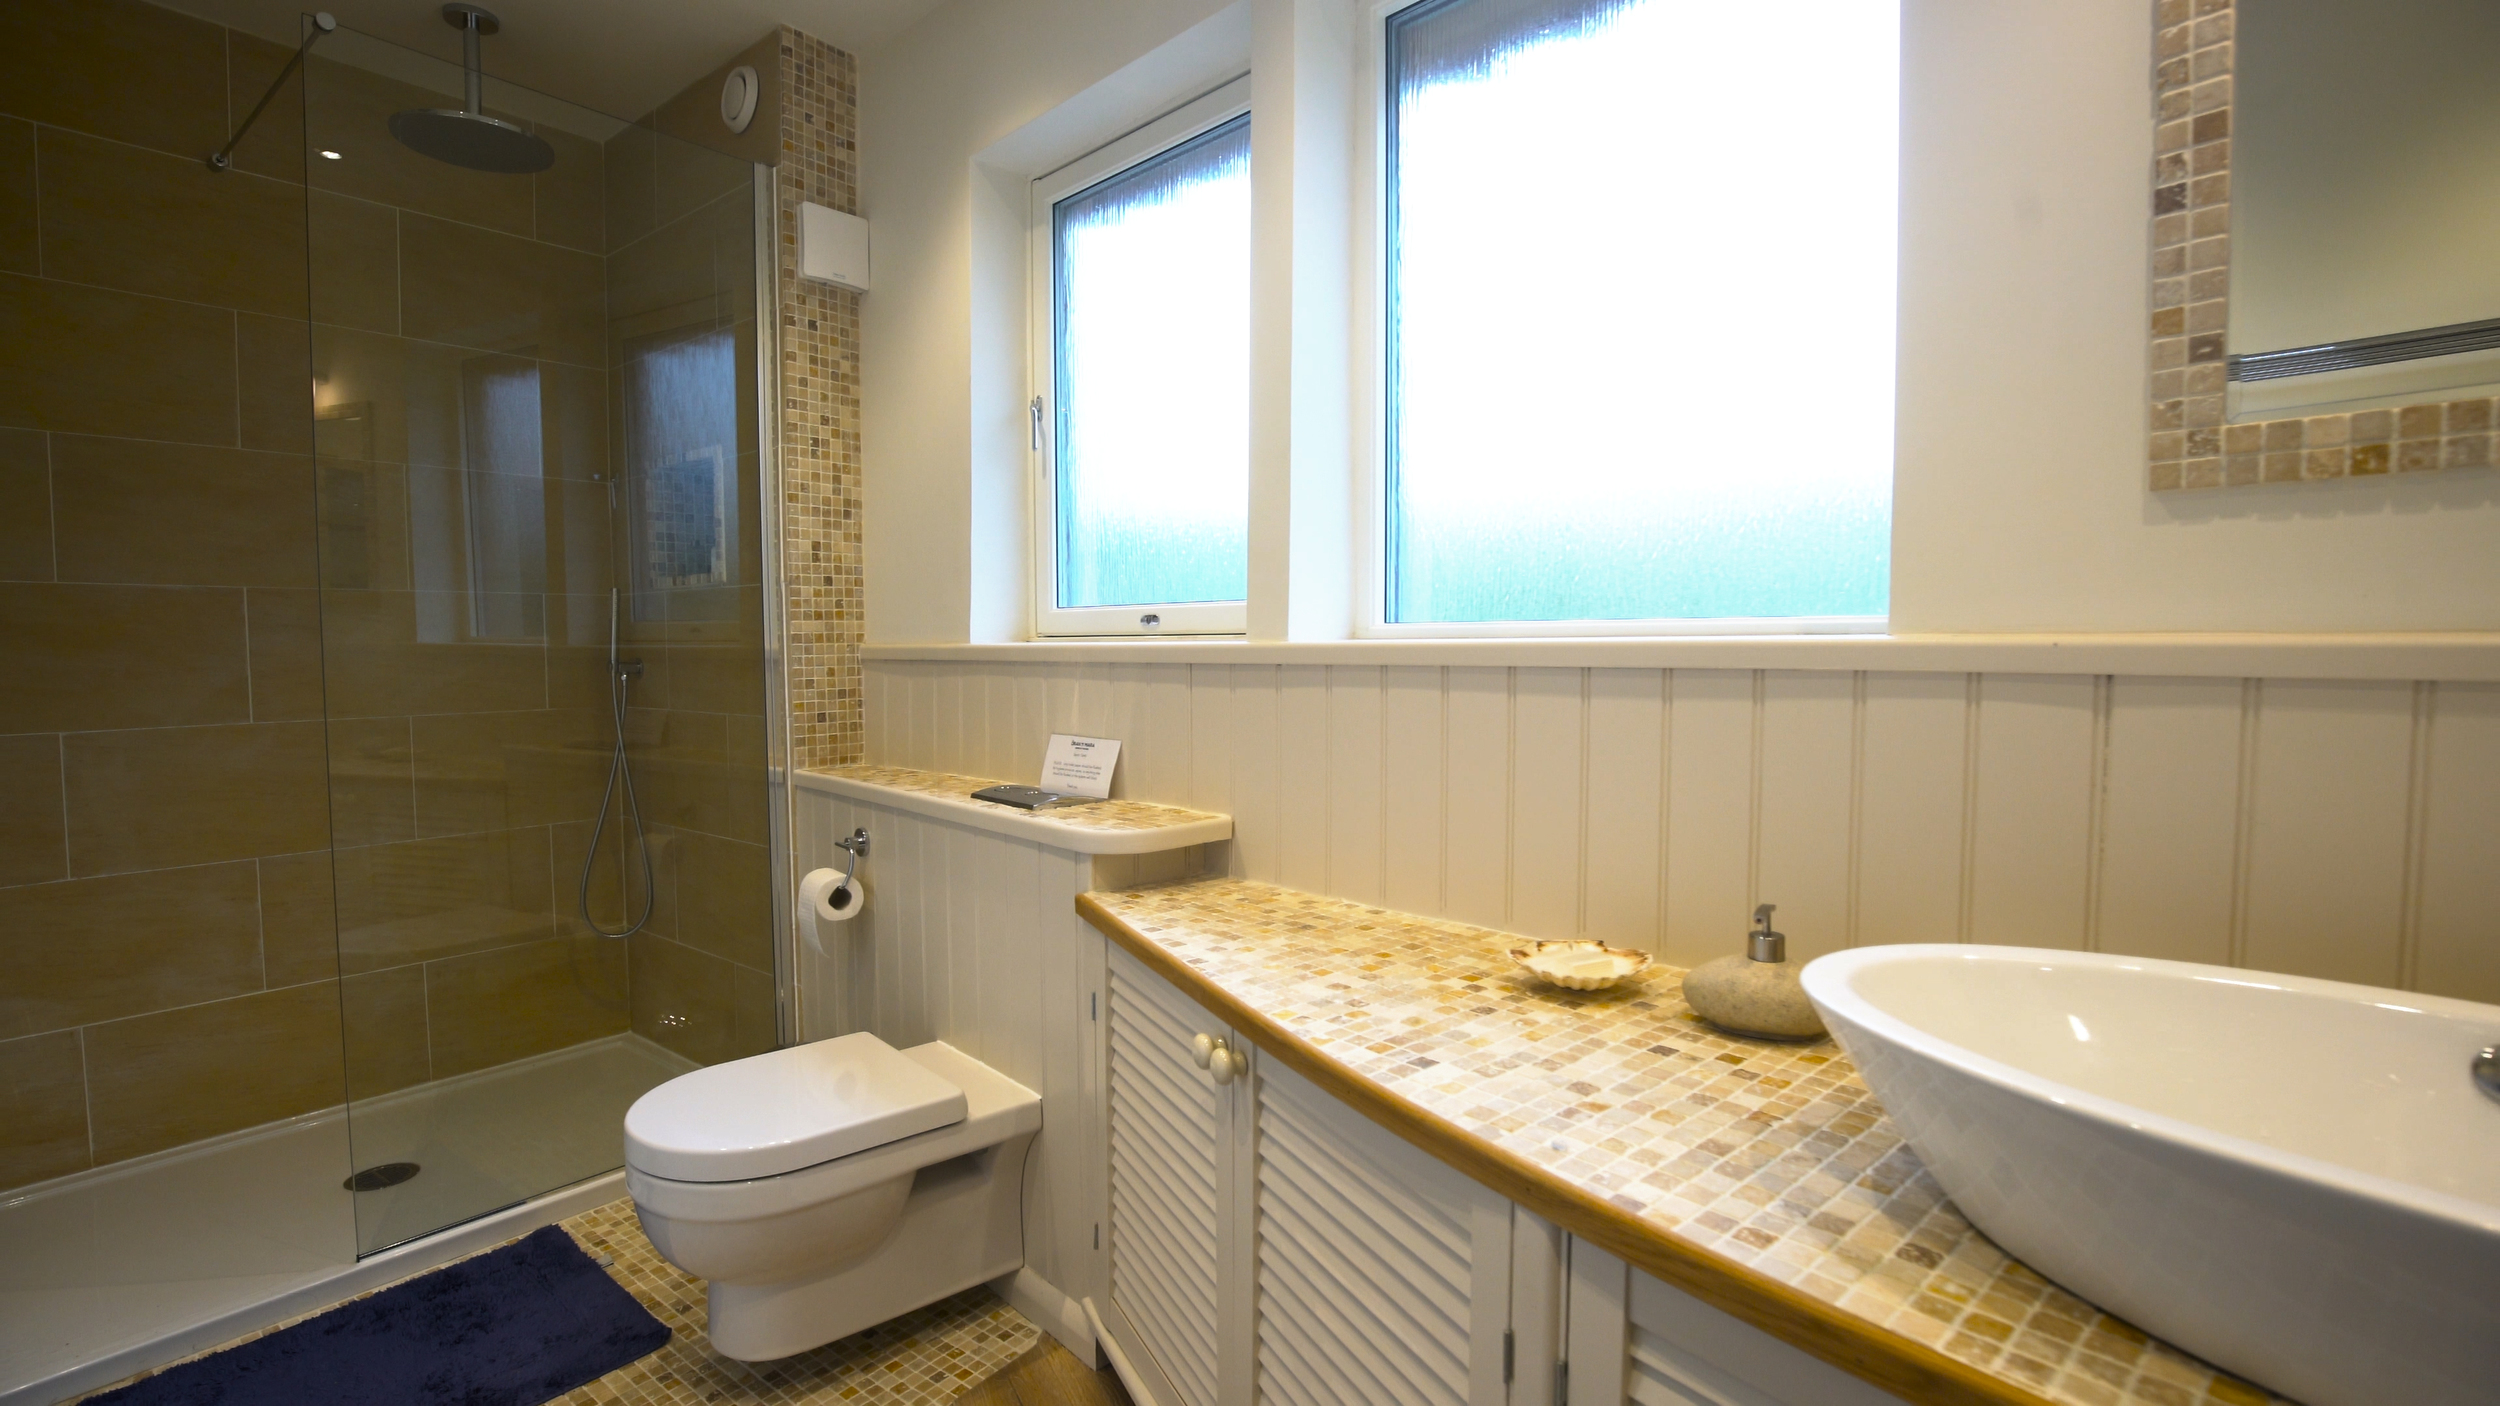 Shoreline has a beautiful en-suite bathroom with a walk-in rain-style shower, and designer detailing